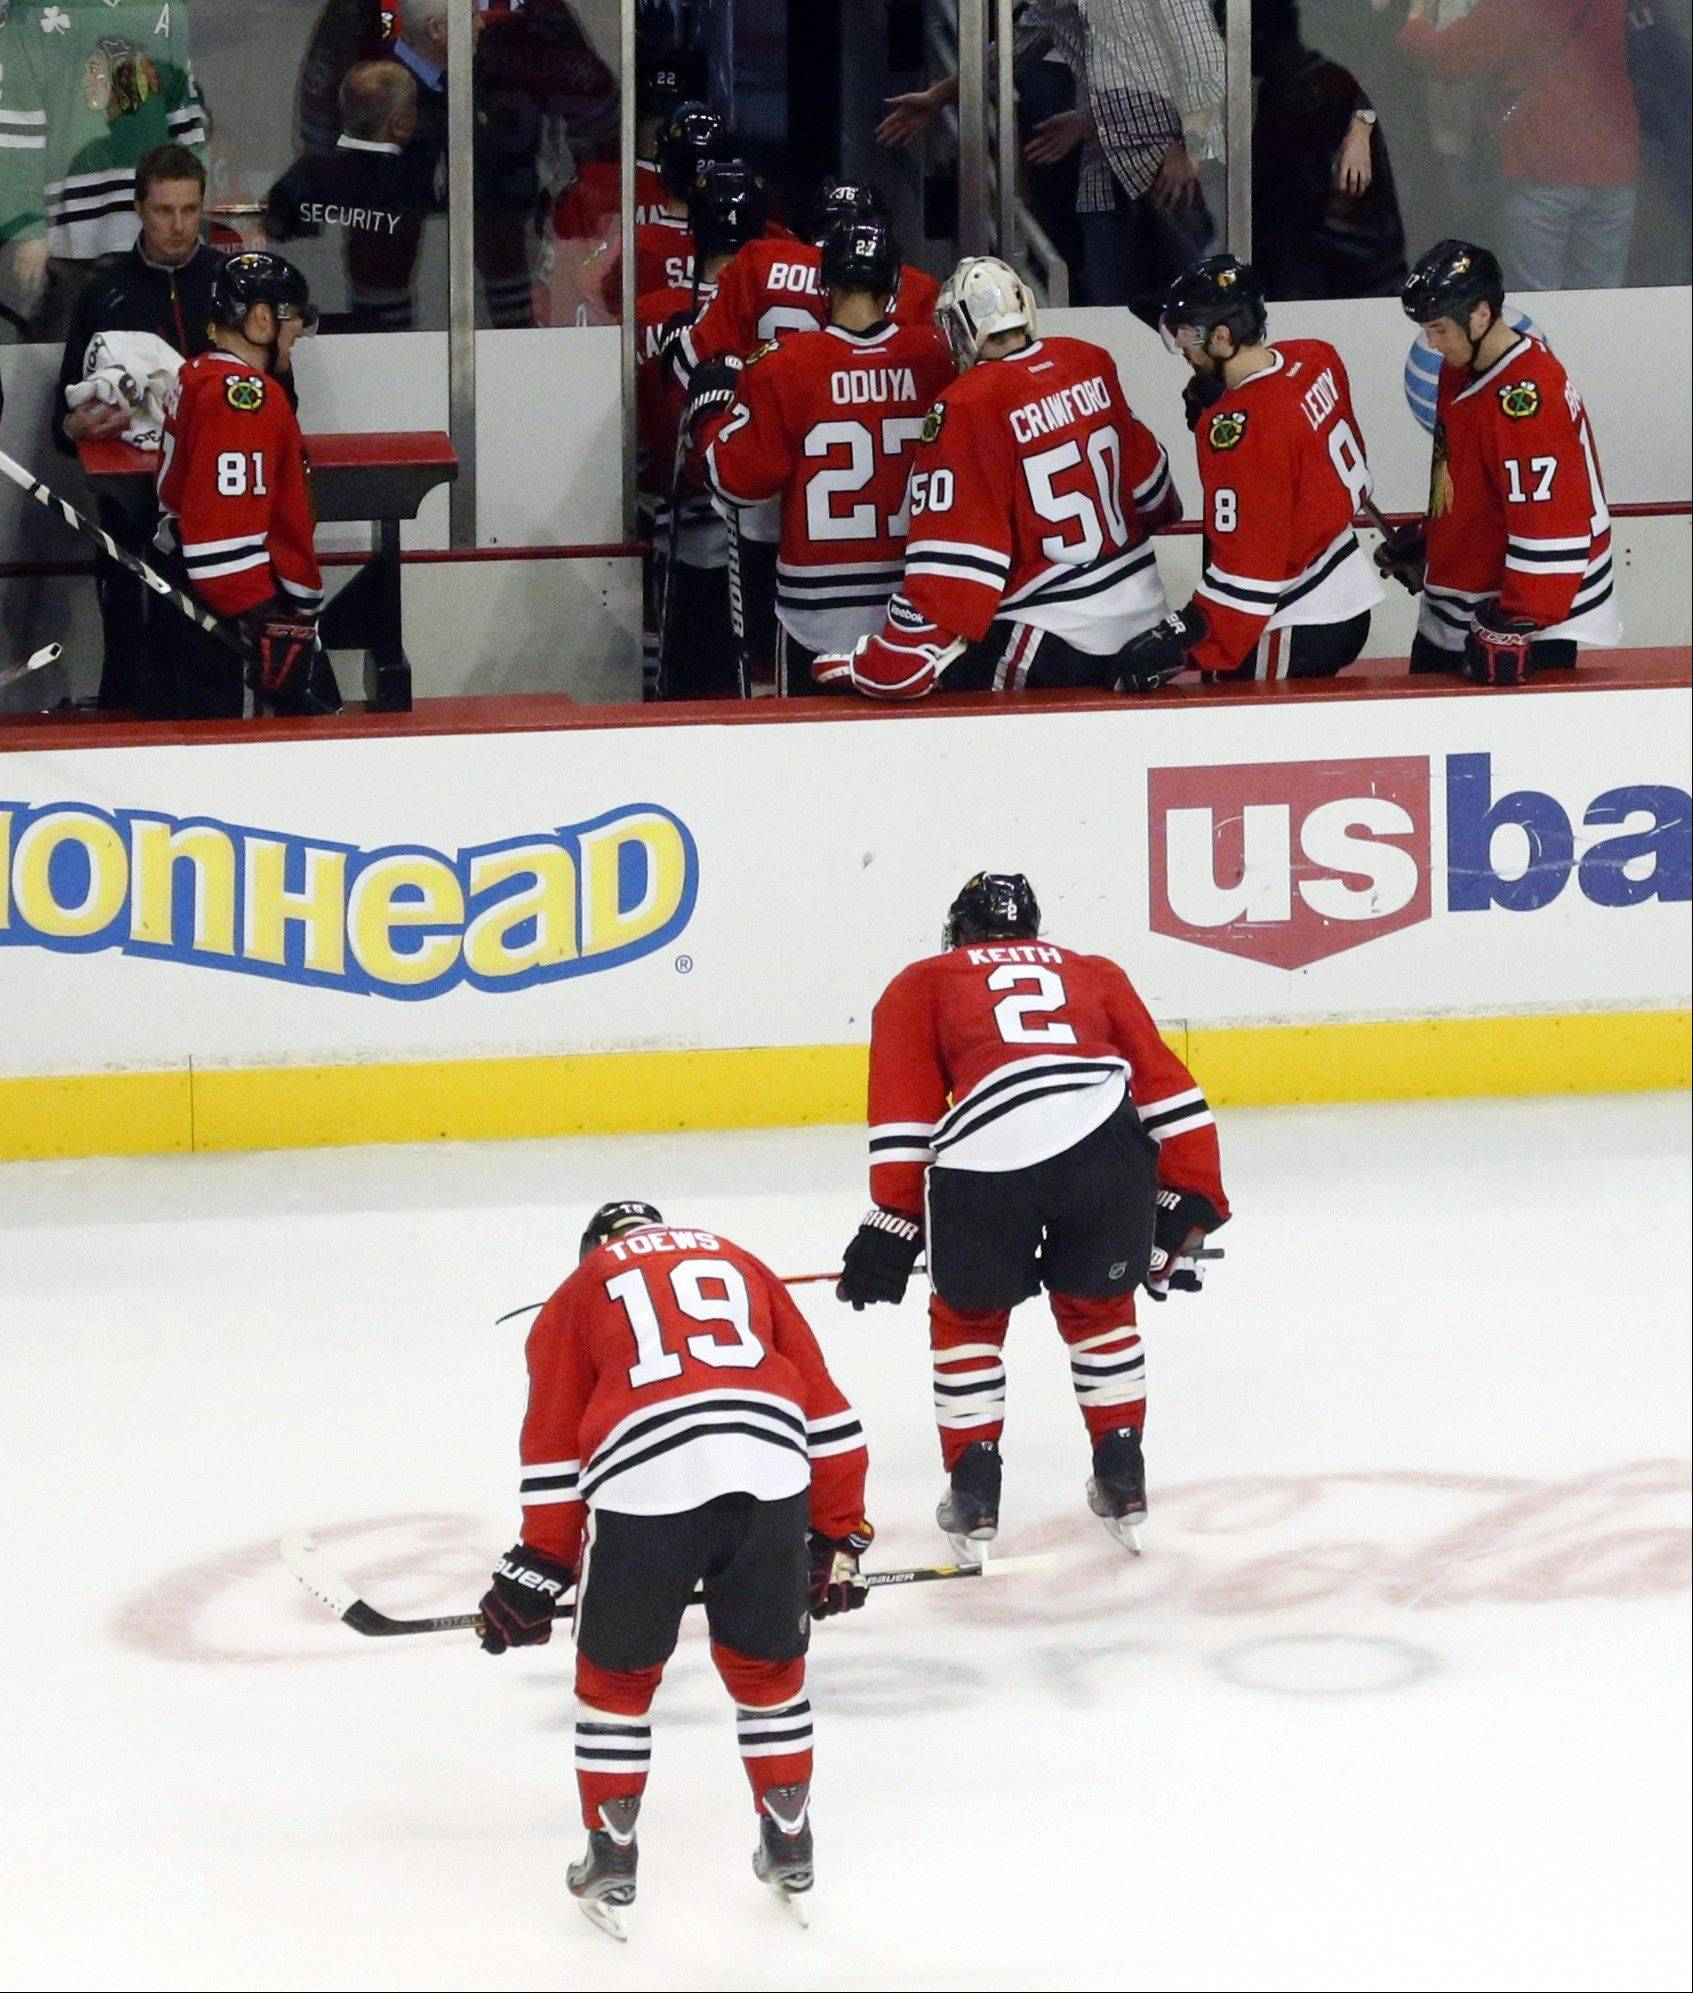 The Blackhawks' Jonathan Toews (19) and Duncan Keith skate to the locker room with teammates after the Blackhawks' 6-5 loss to the Edmonton Oilers on Sunday night at the United Center.